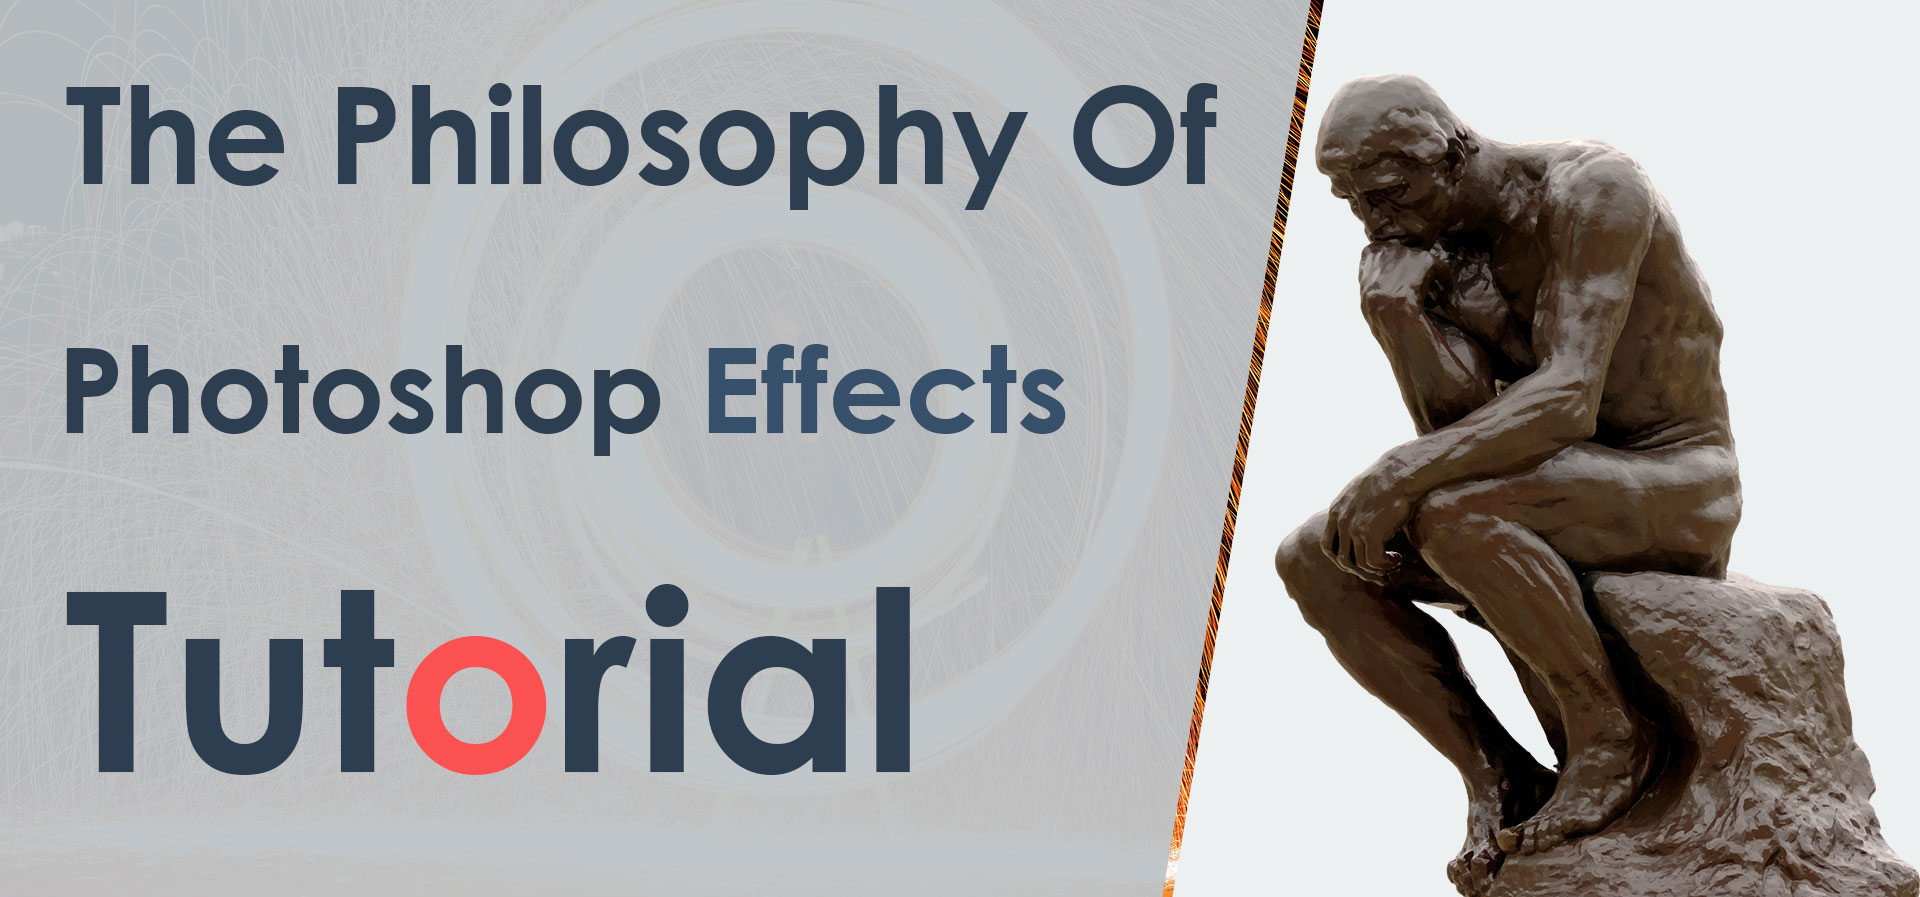 The-Philosophy-Of-Photoshop-Effects-Tutorial